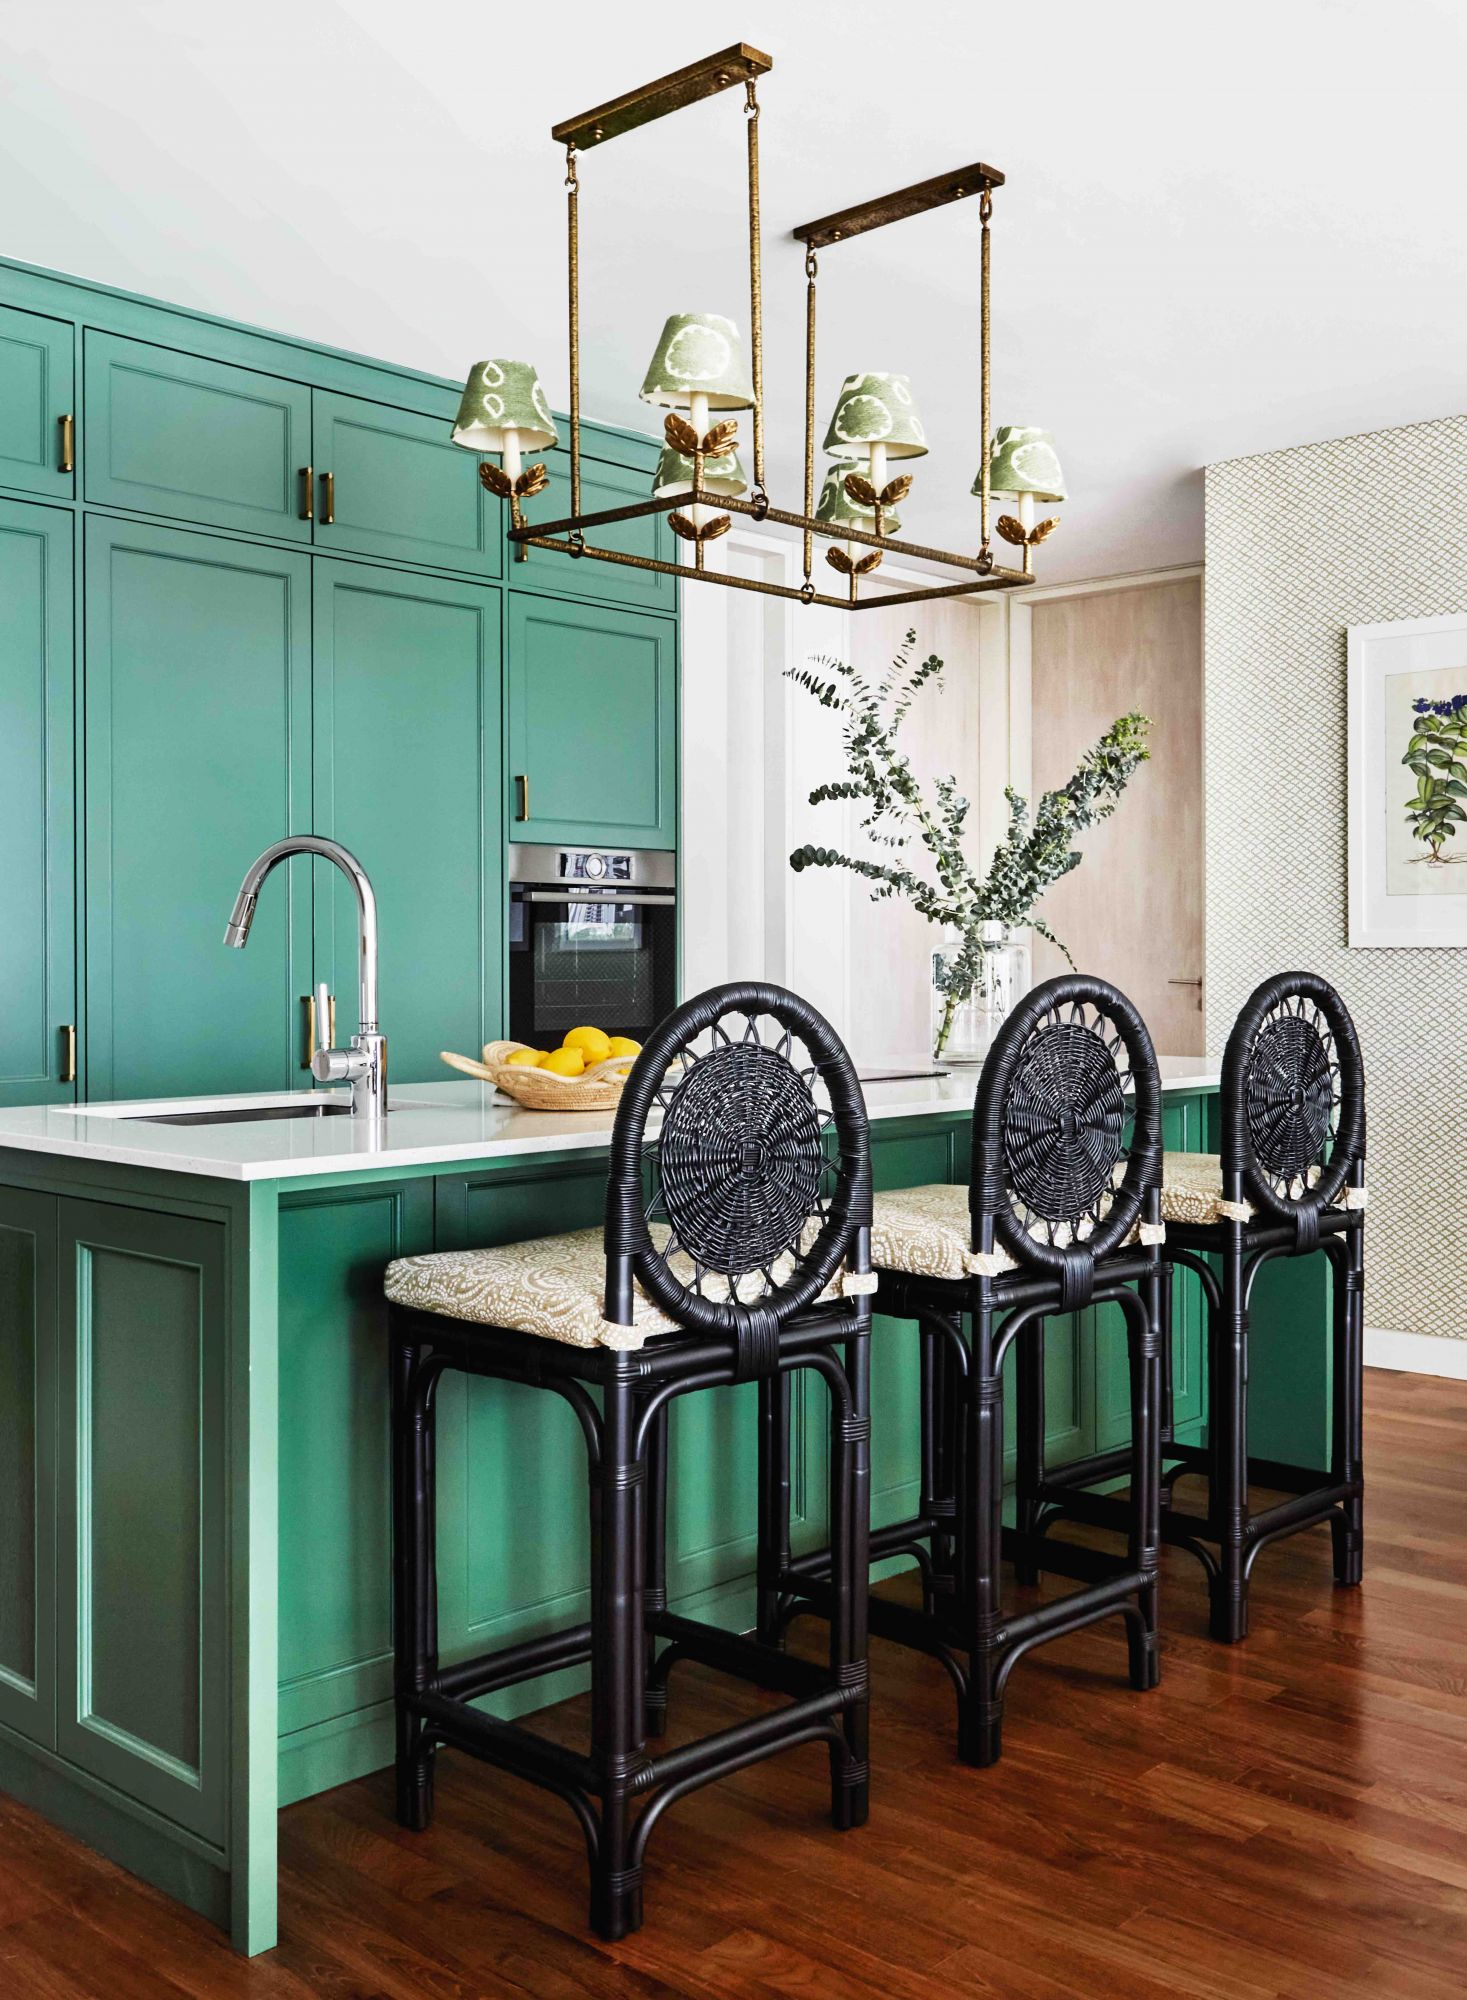 This vibrant kitchen designed by E&A Interiors employs a bold emerald hue on the cabinetry and the island